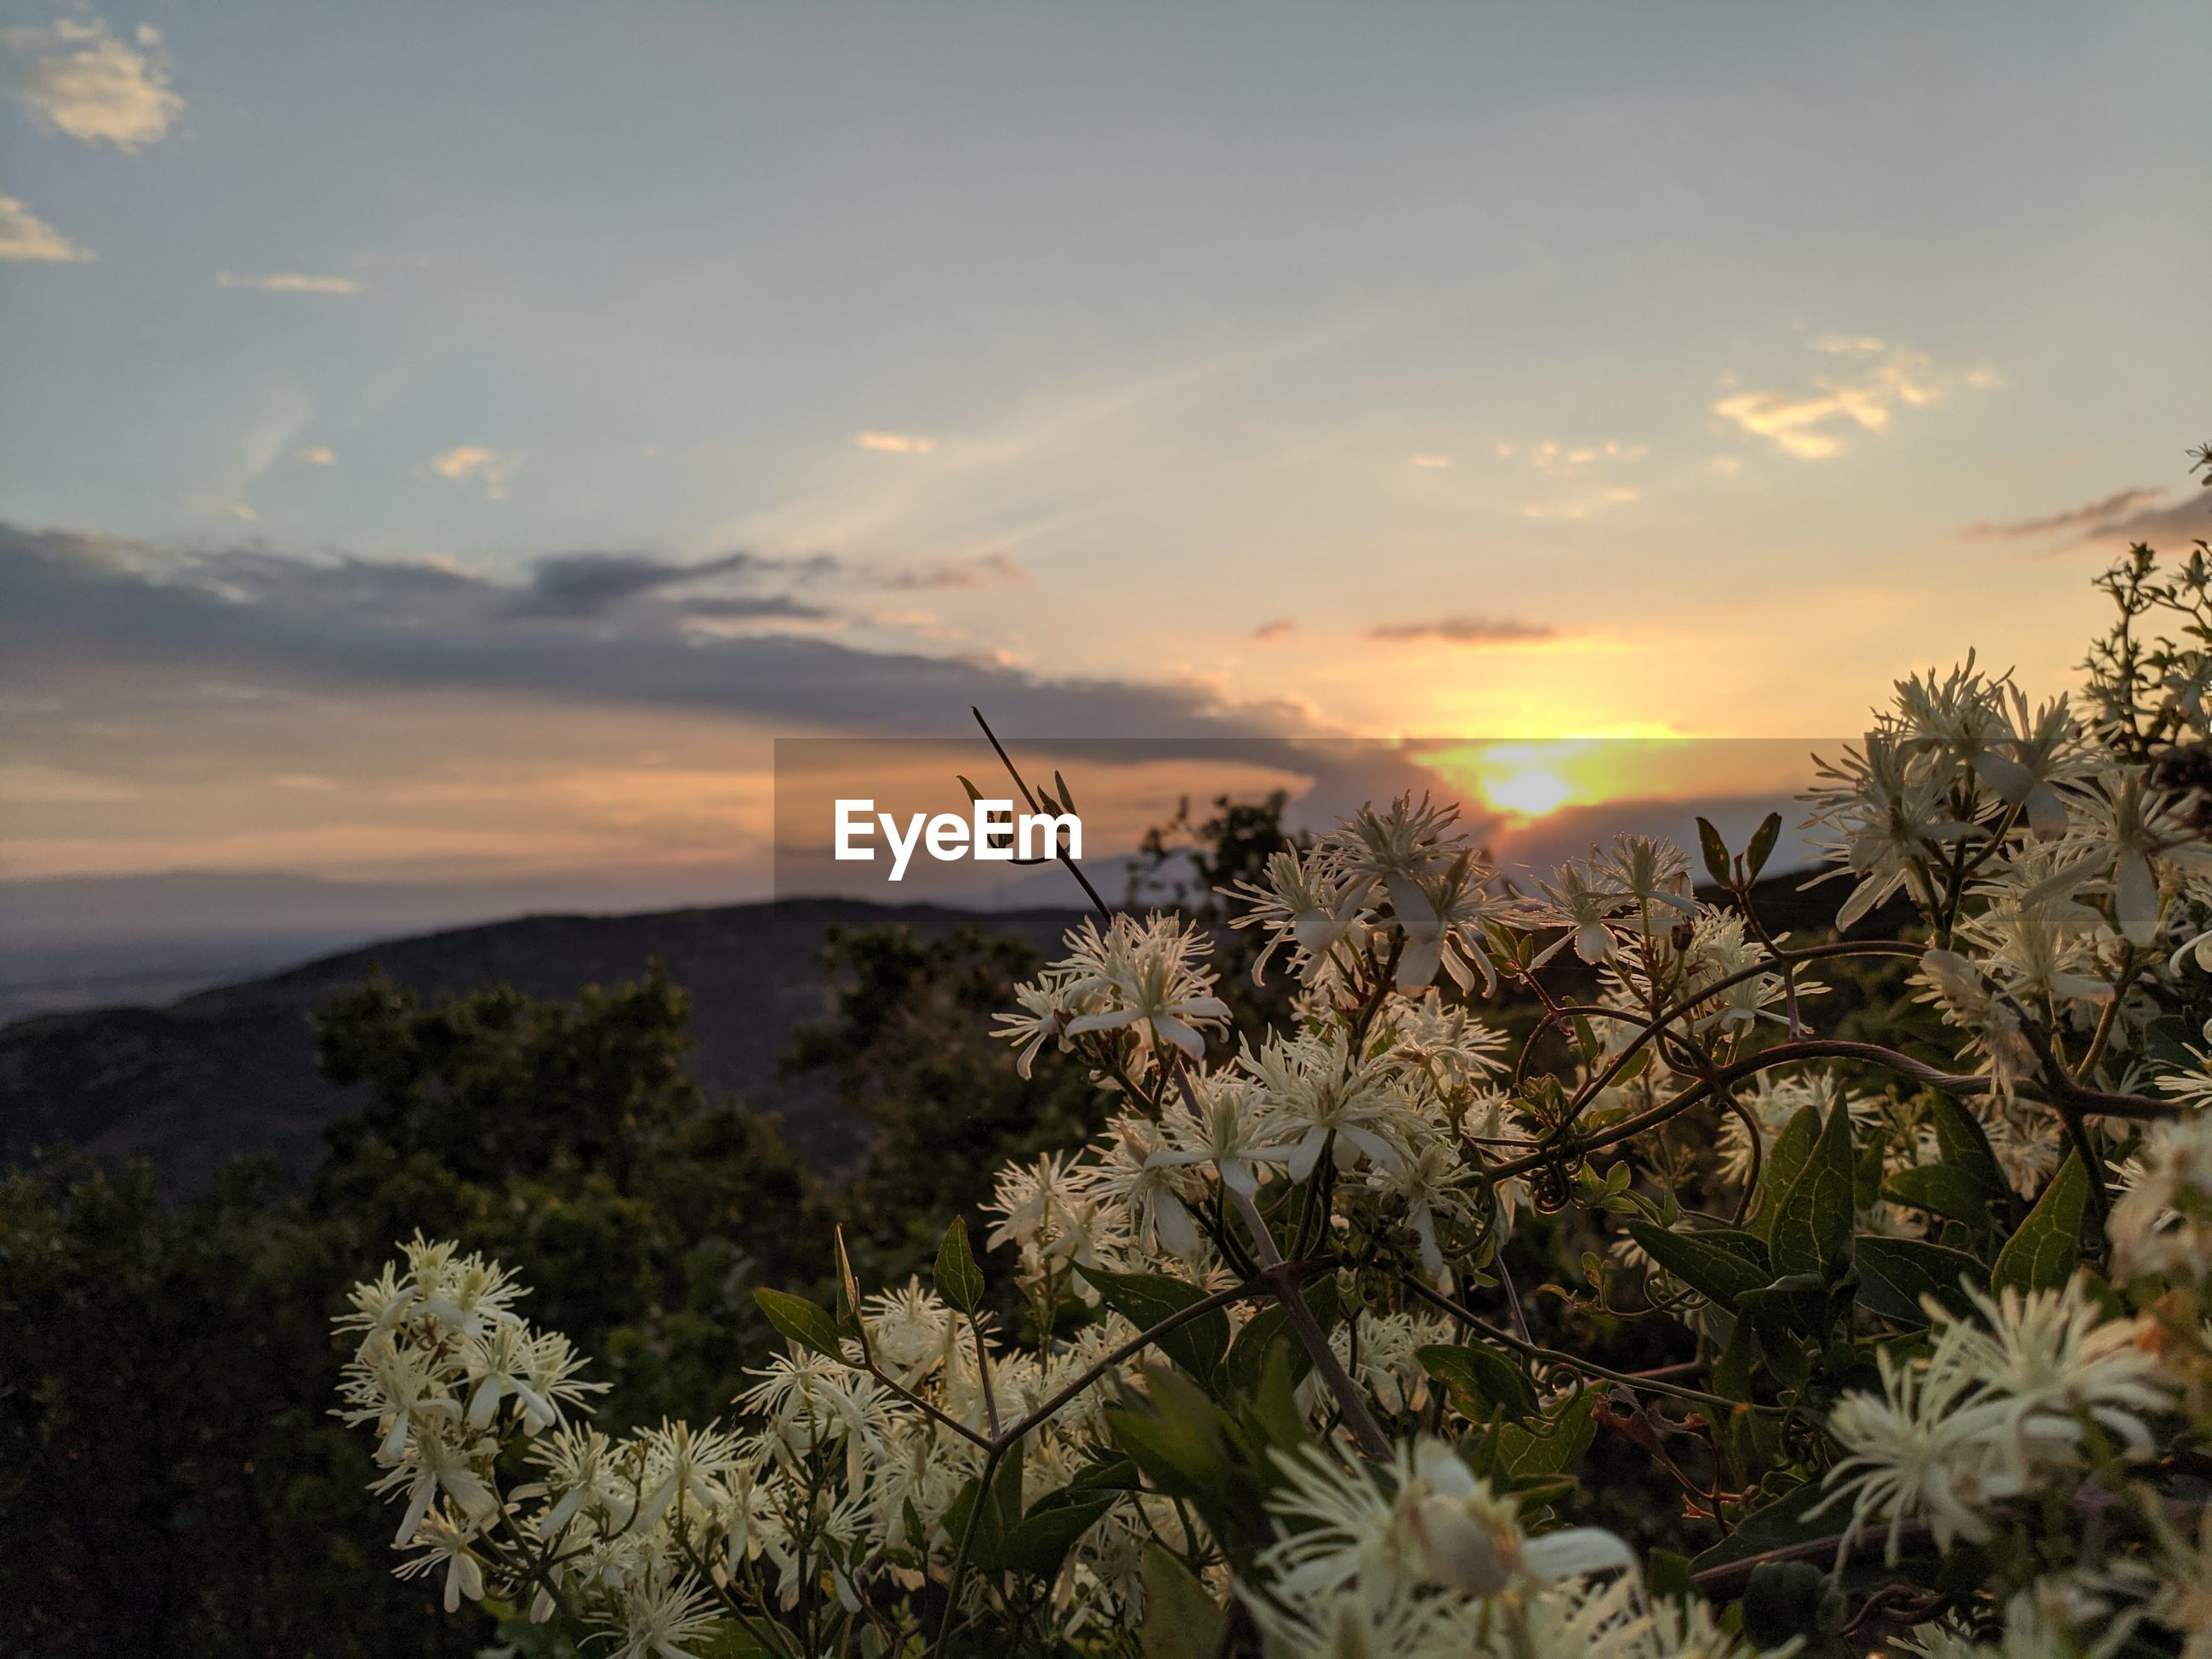 SCENIC VIEW OF FLOWERING PLANTS AGAINST SUNSET SKY